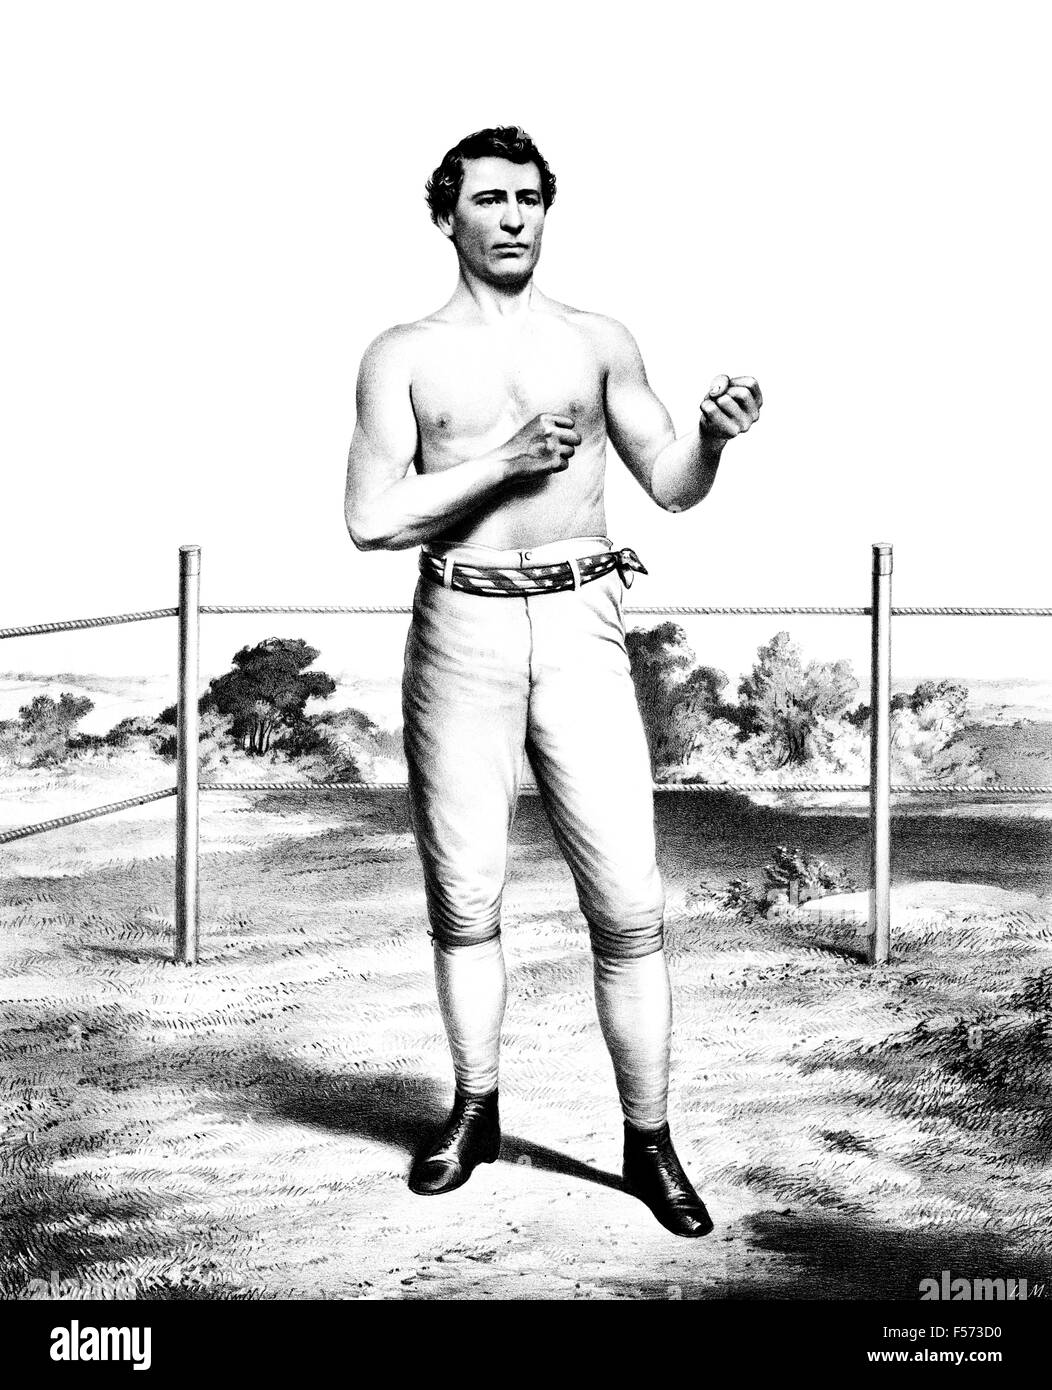 Vintage portrait print of American bare-knuckle boxer John C Heenan (1834 - 1873). Heenan, born in New York and - Stock Image